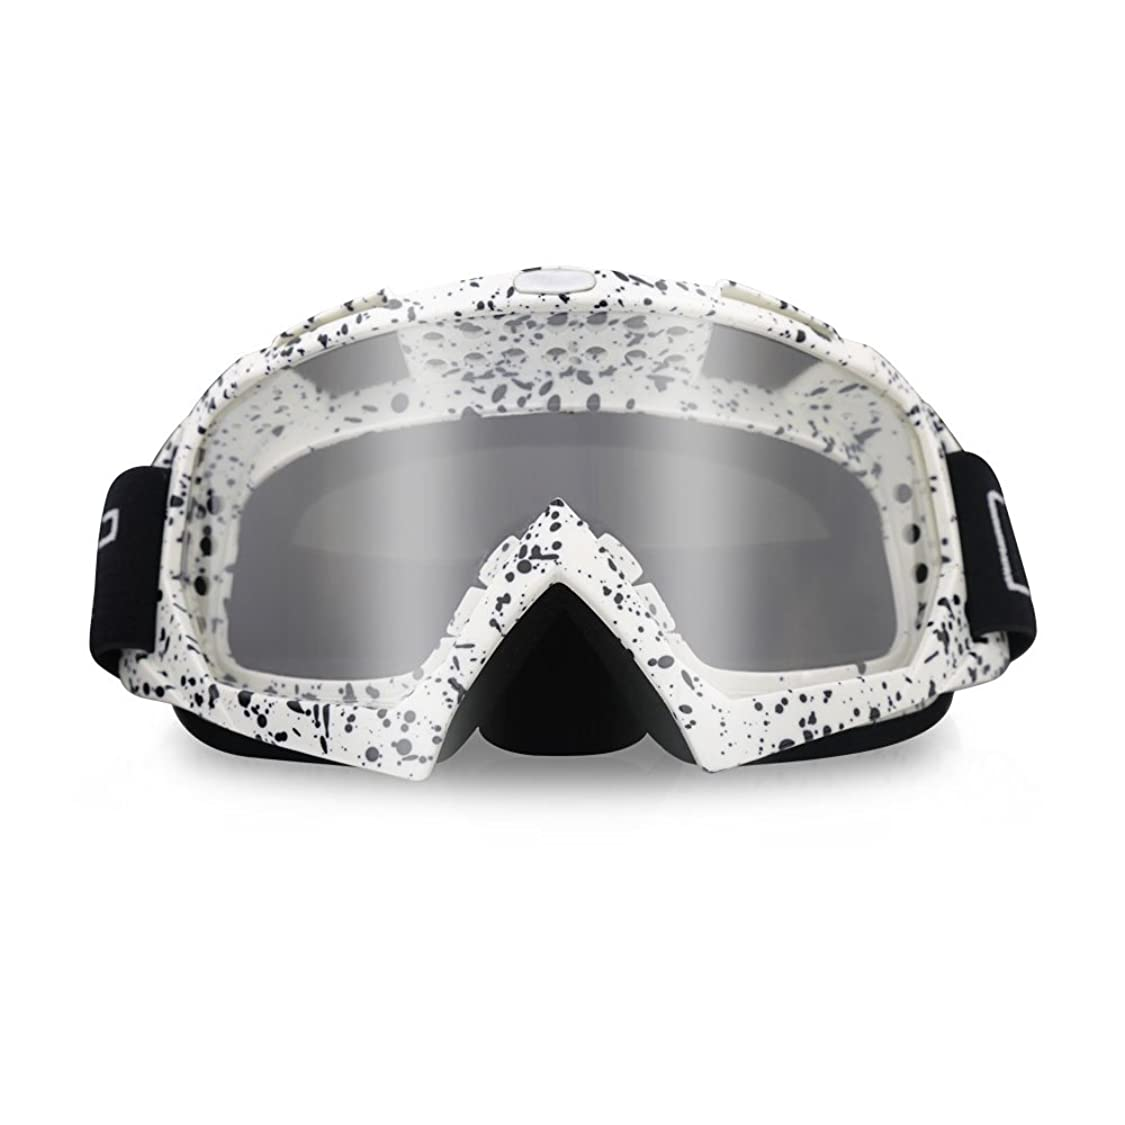 ThyWay Motorcycle Goggles, Anti UV Anti Scratch Dustproof Windproof Safety Unisex Goggles Fit for Snow Skiing, Cycling, Climbing, Riding & Outdoor zm27180504202861